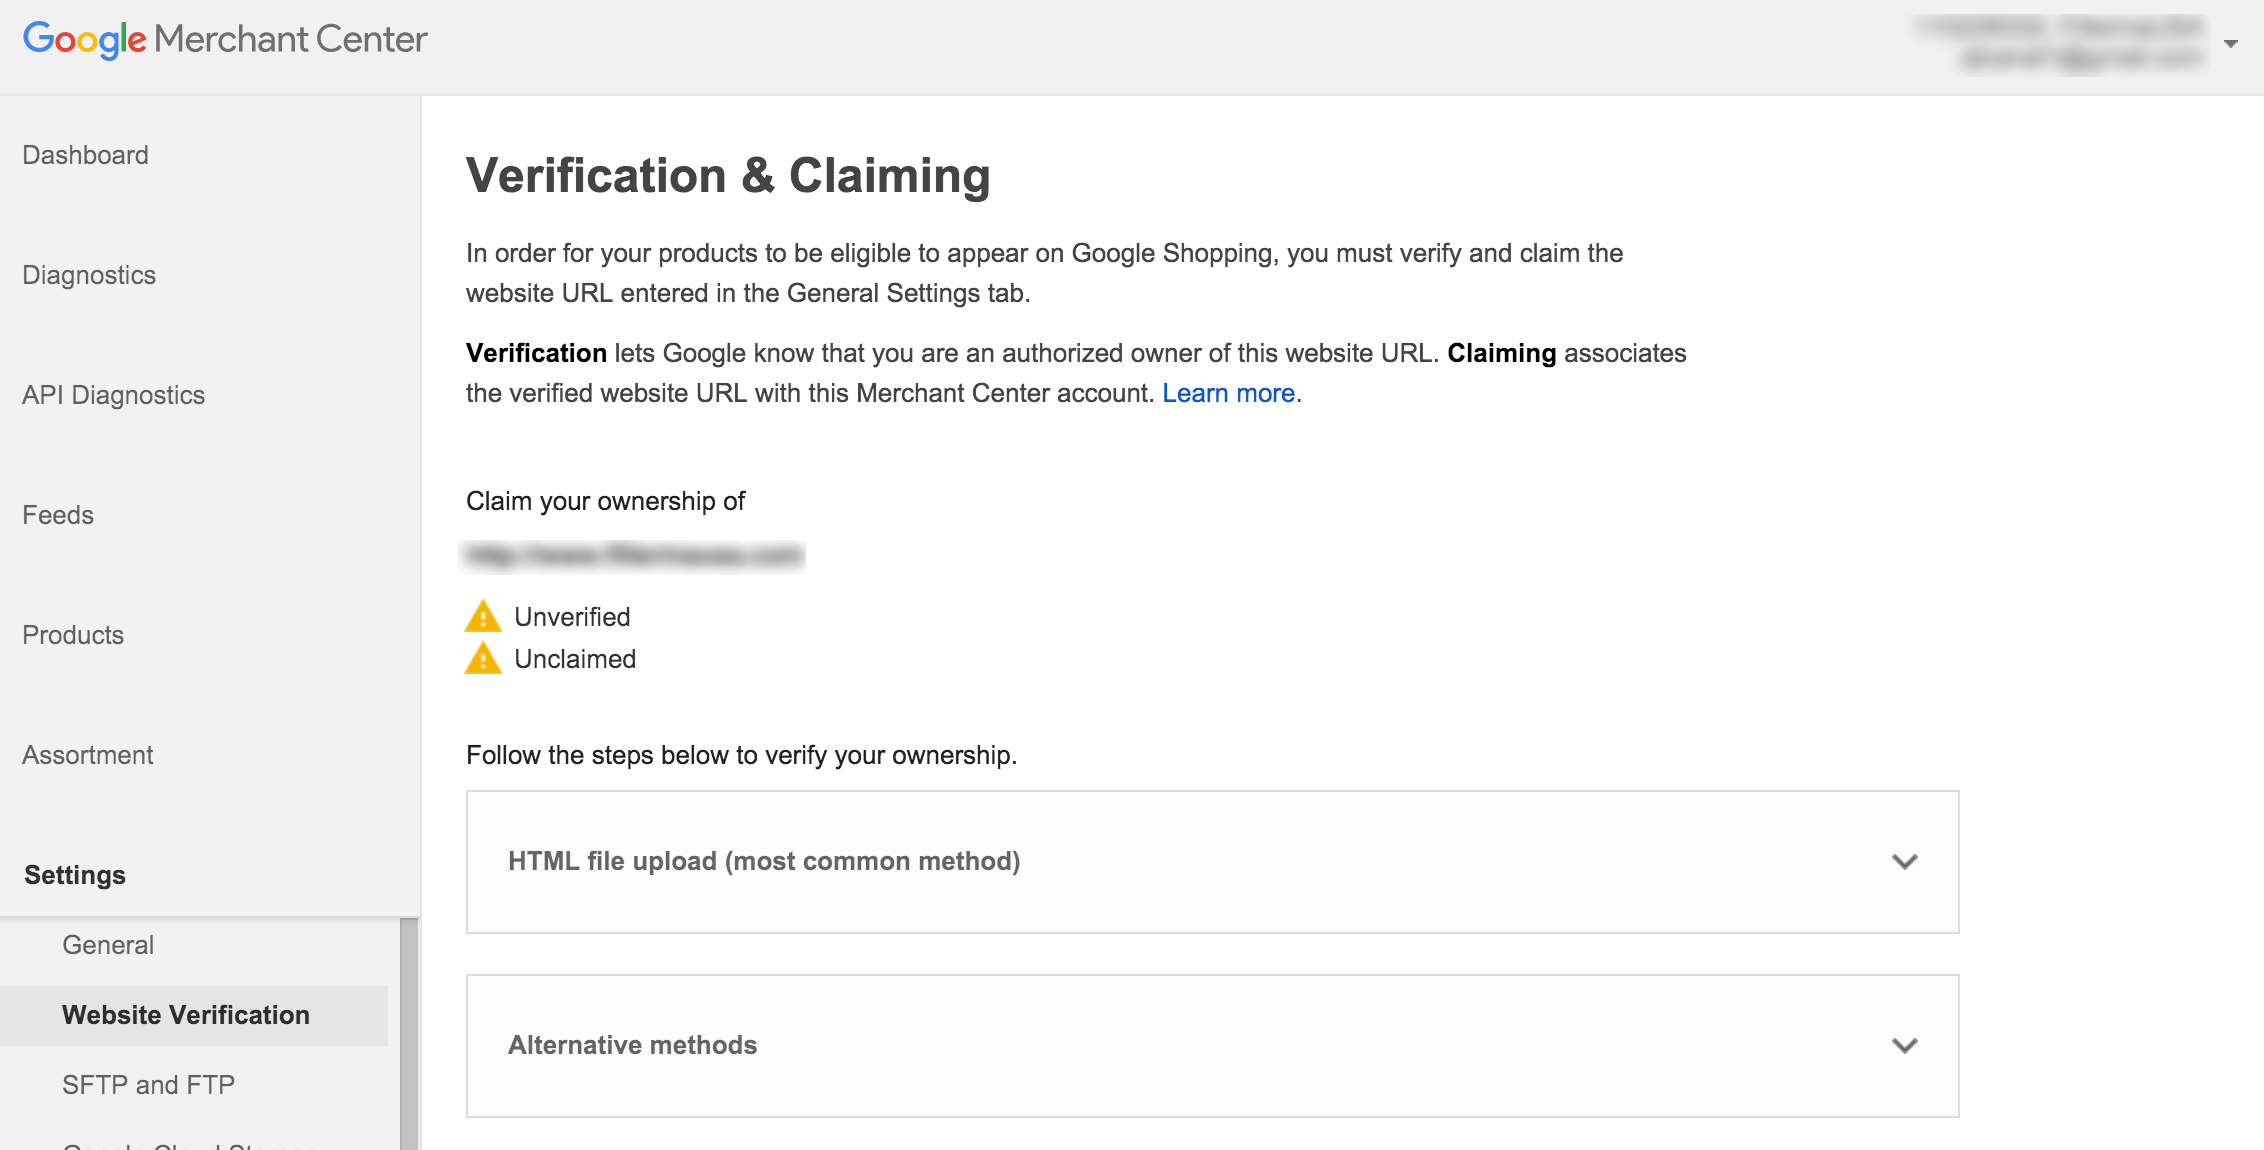 Google Merchant Center: Verifying Site Ownership